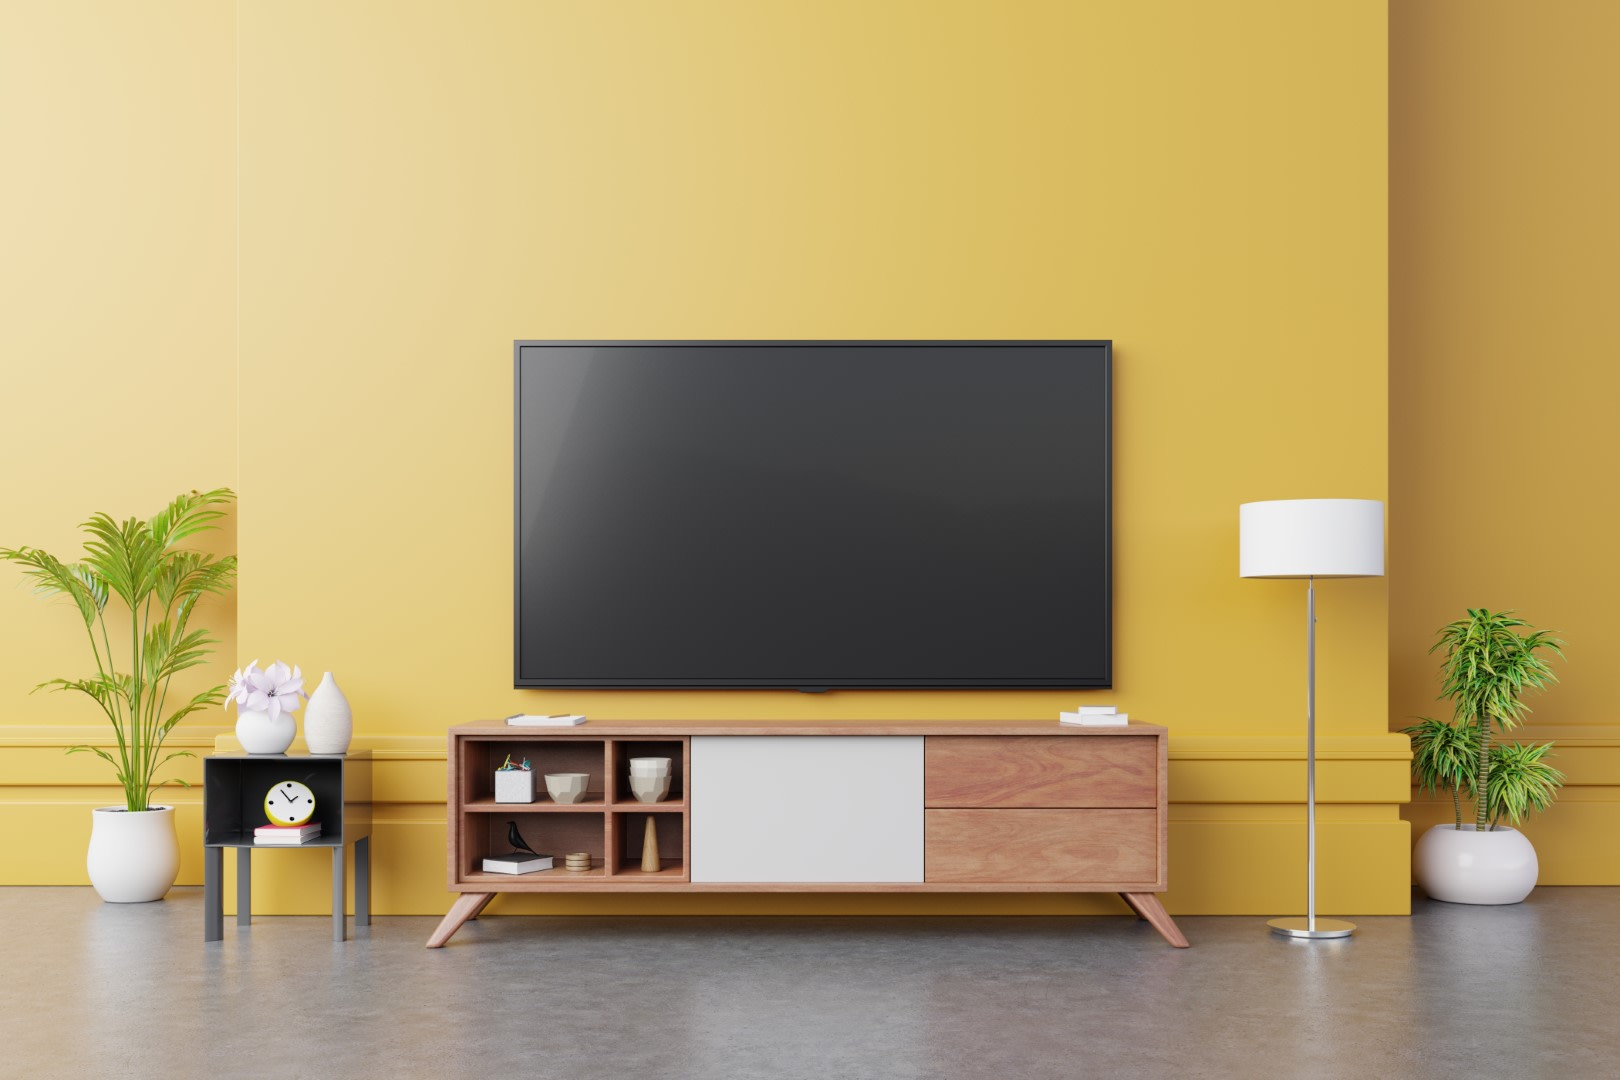 An image related to Unbiased Cheap Philips TVs Review